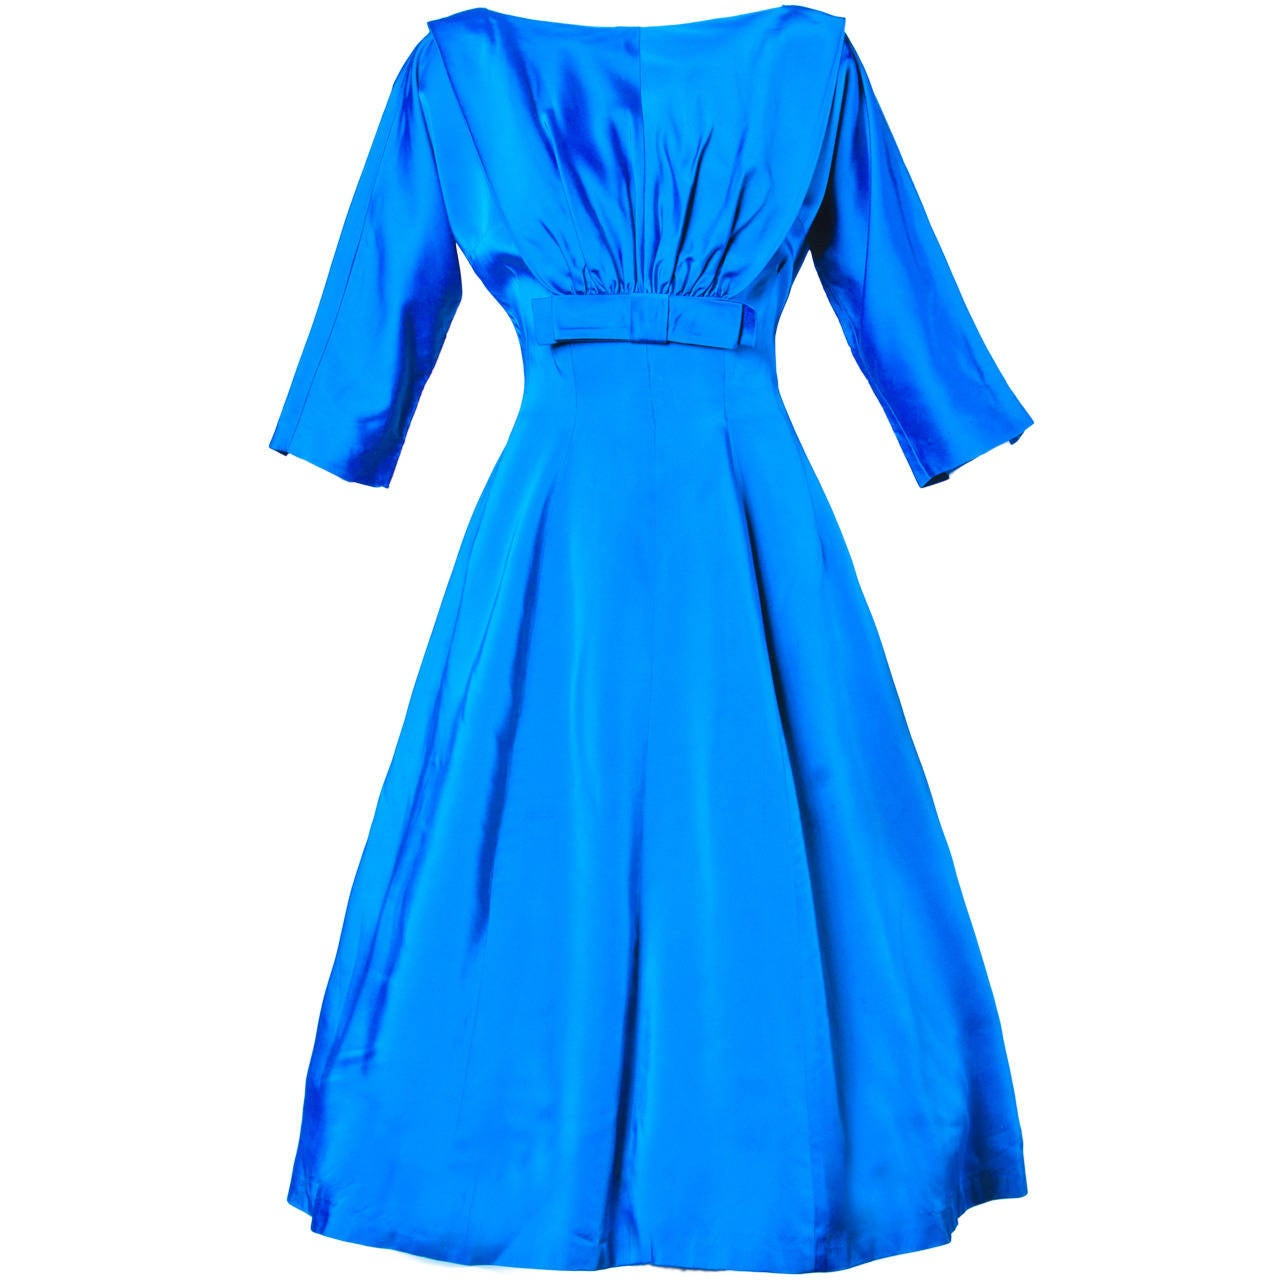 Vintage 1960s 60s Blue Satin Full Sweep Party Dress with Bow 1